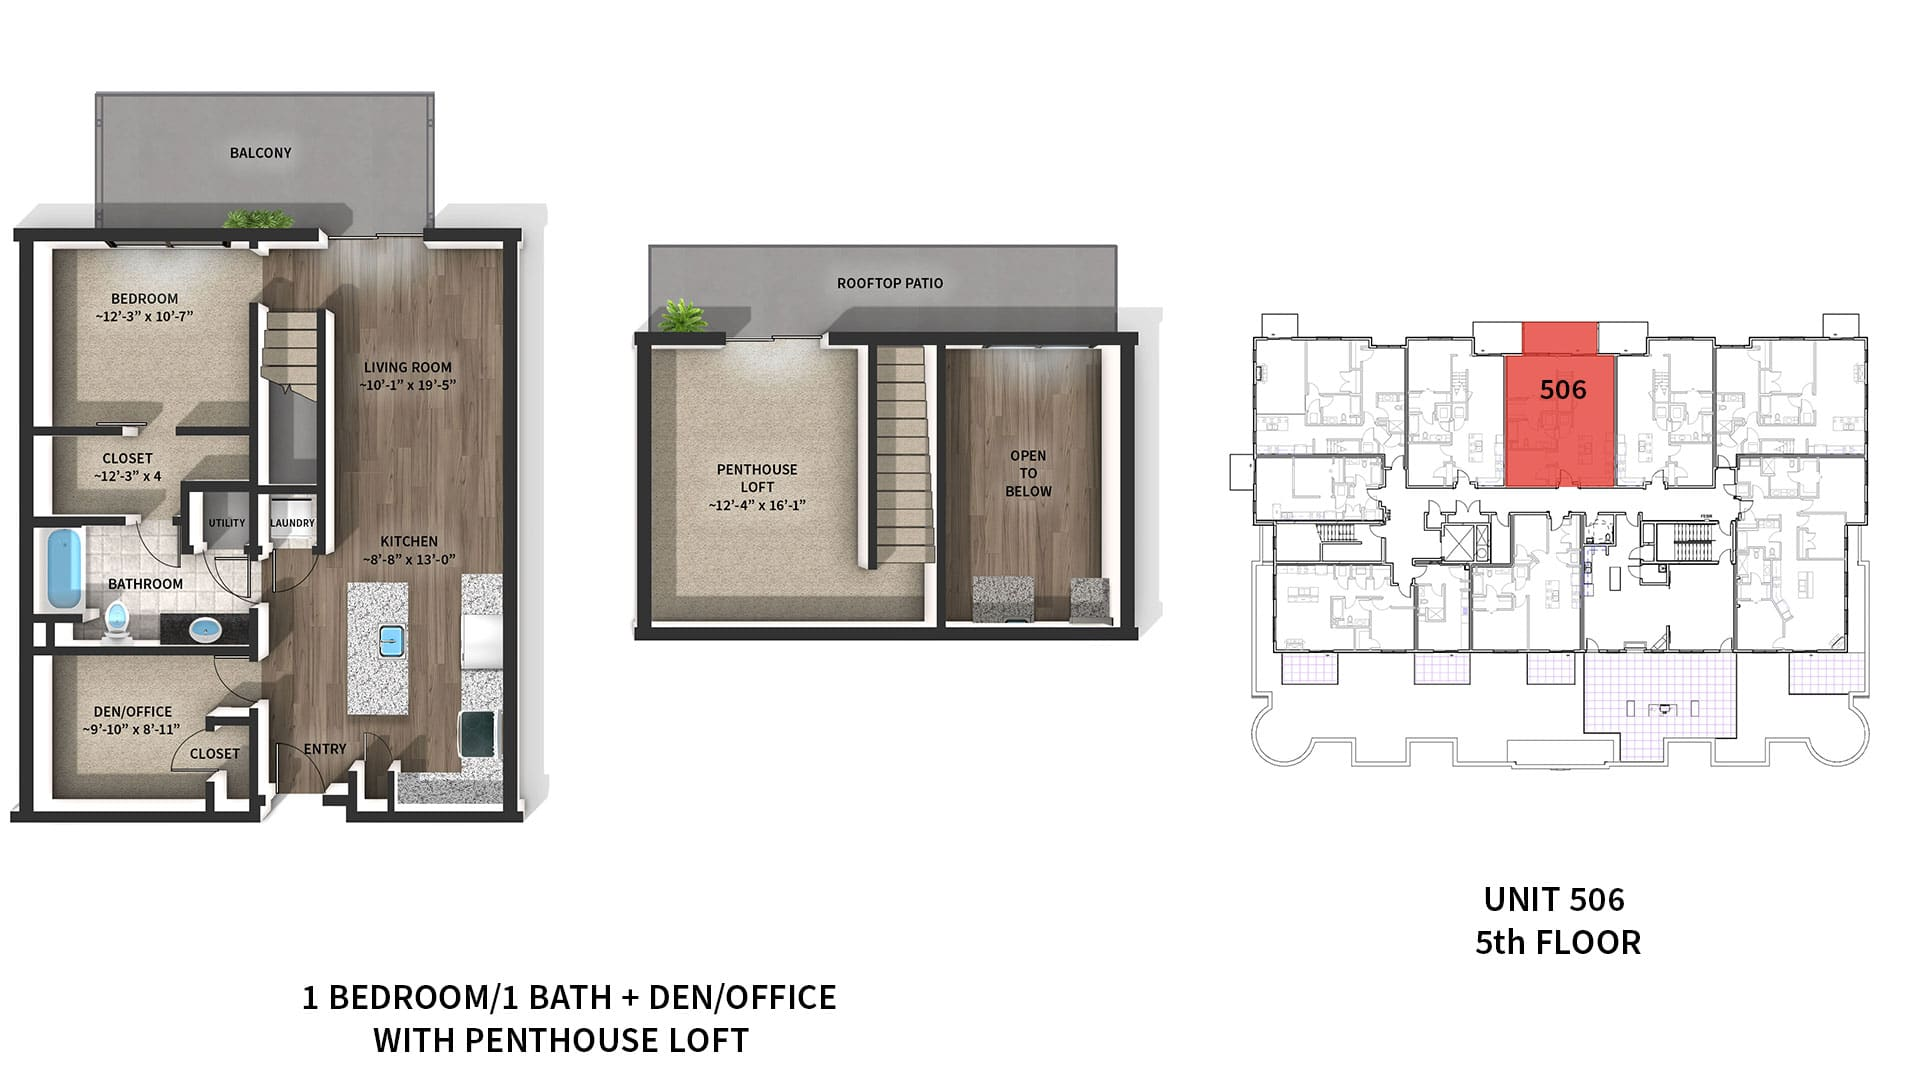 Image of the floor plan for luxury penthouse apartment 506 at West Washington Place in downtown Madison WI.